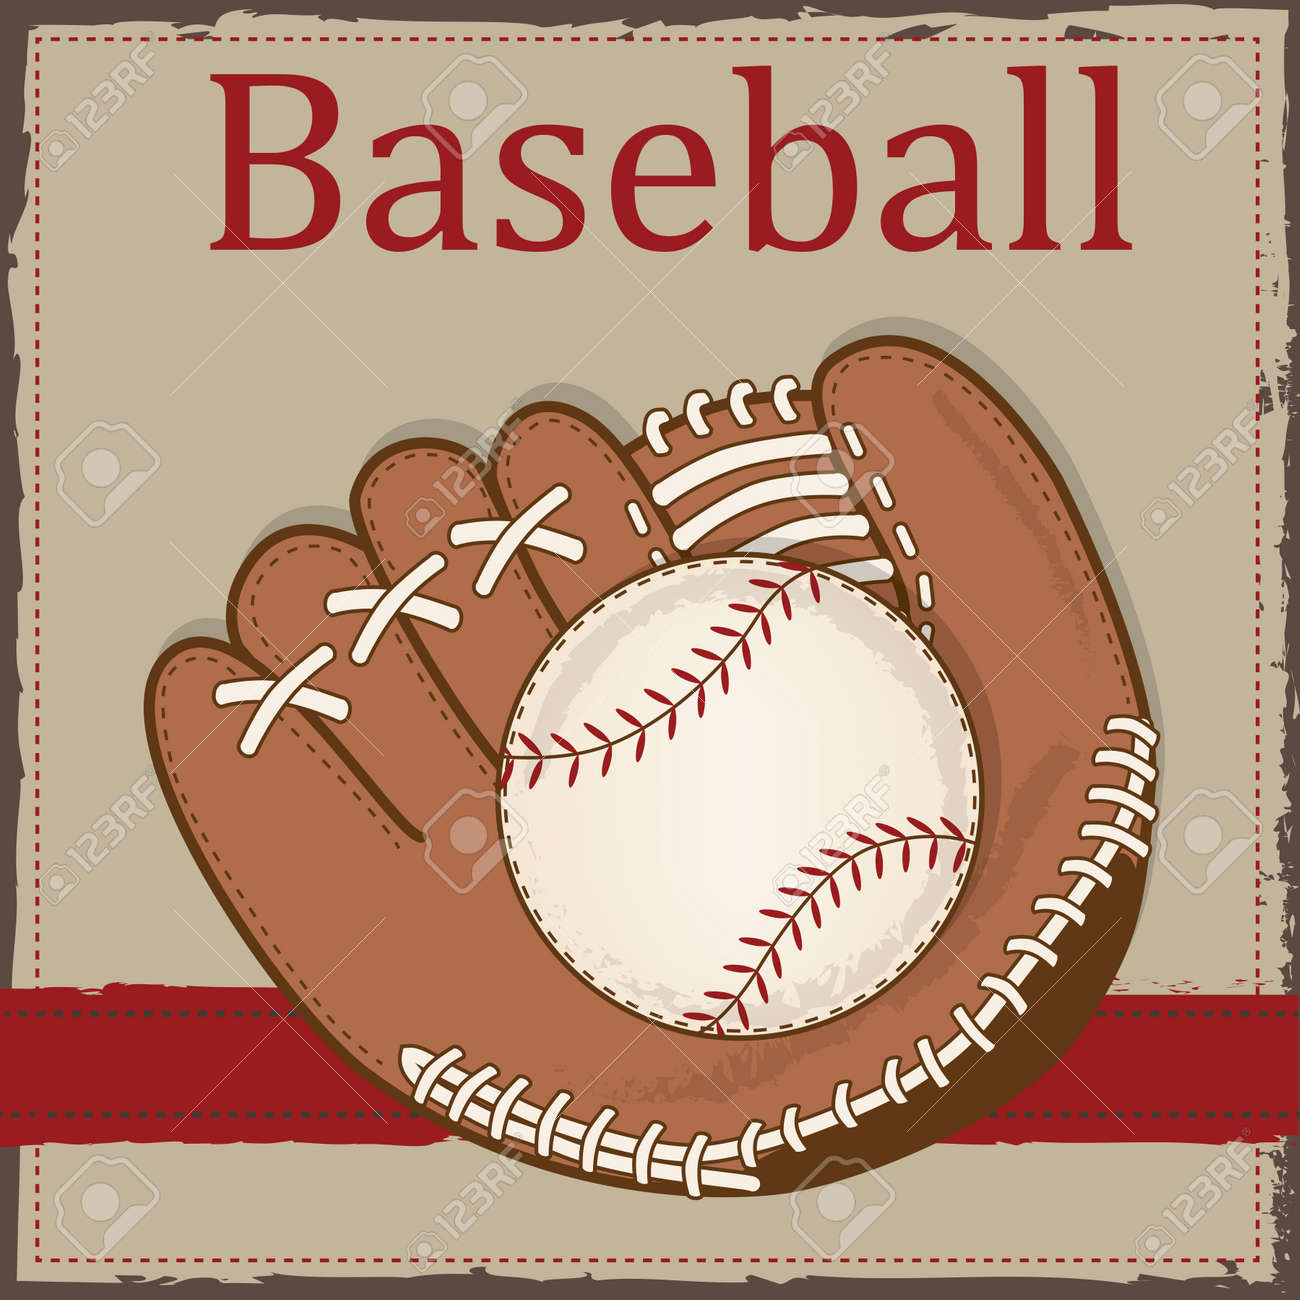 Vintage Baseball And Glove Or Mitt Layout For Scrapbooking Cards